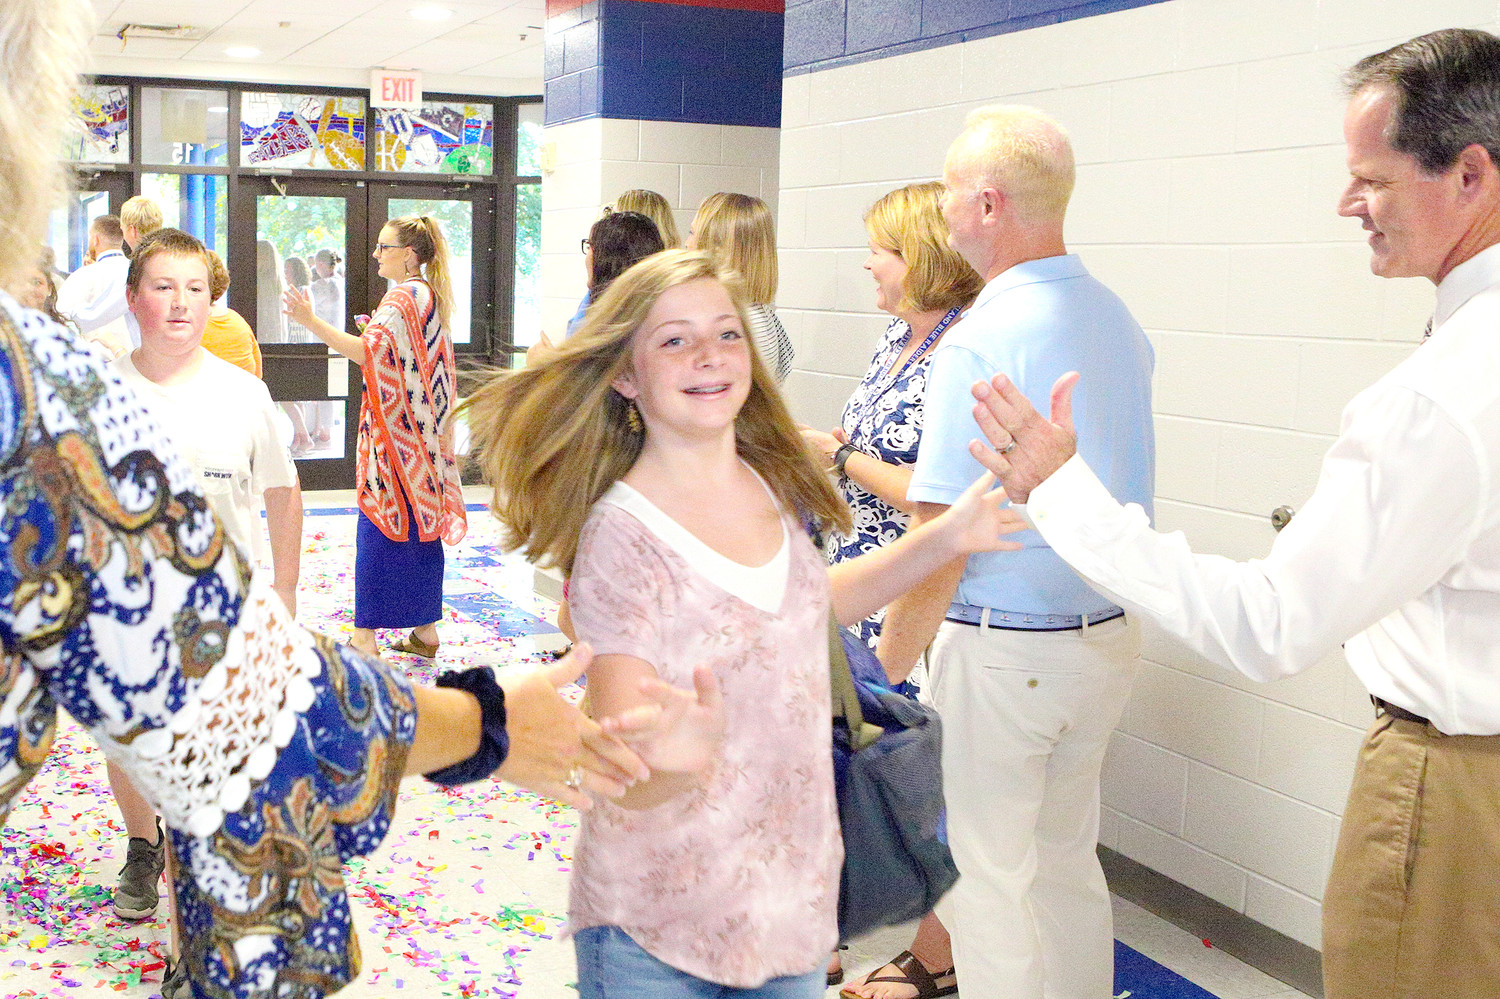 CHEERFUL STUDENT Eliza Roe trots through the row of cheers and high-fives awaiting her as she enters Cleveland Middle School for the new school year.